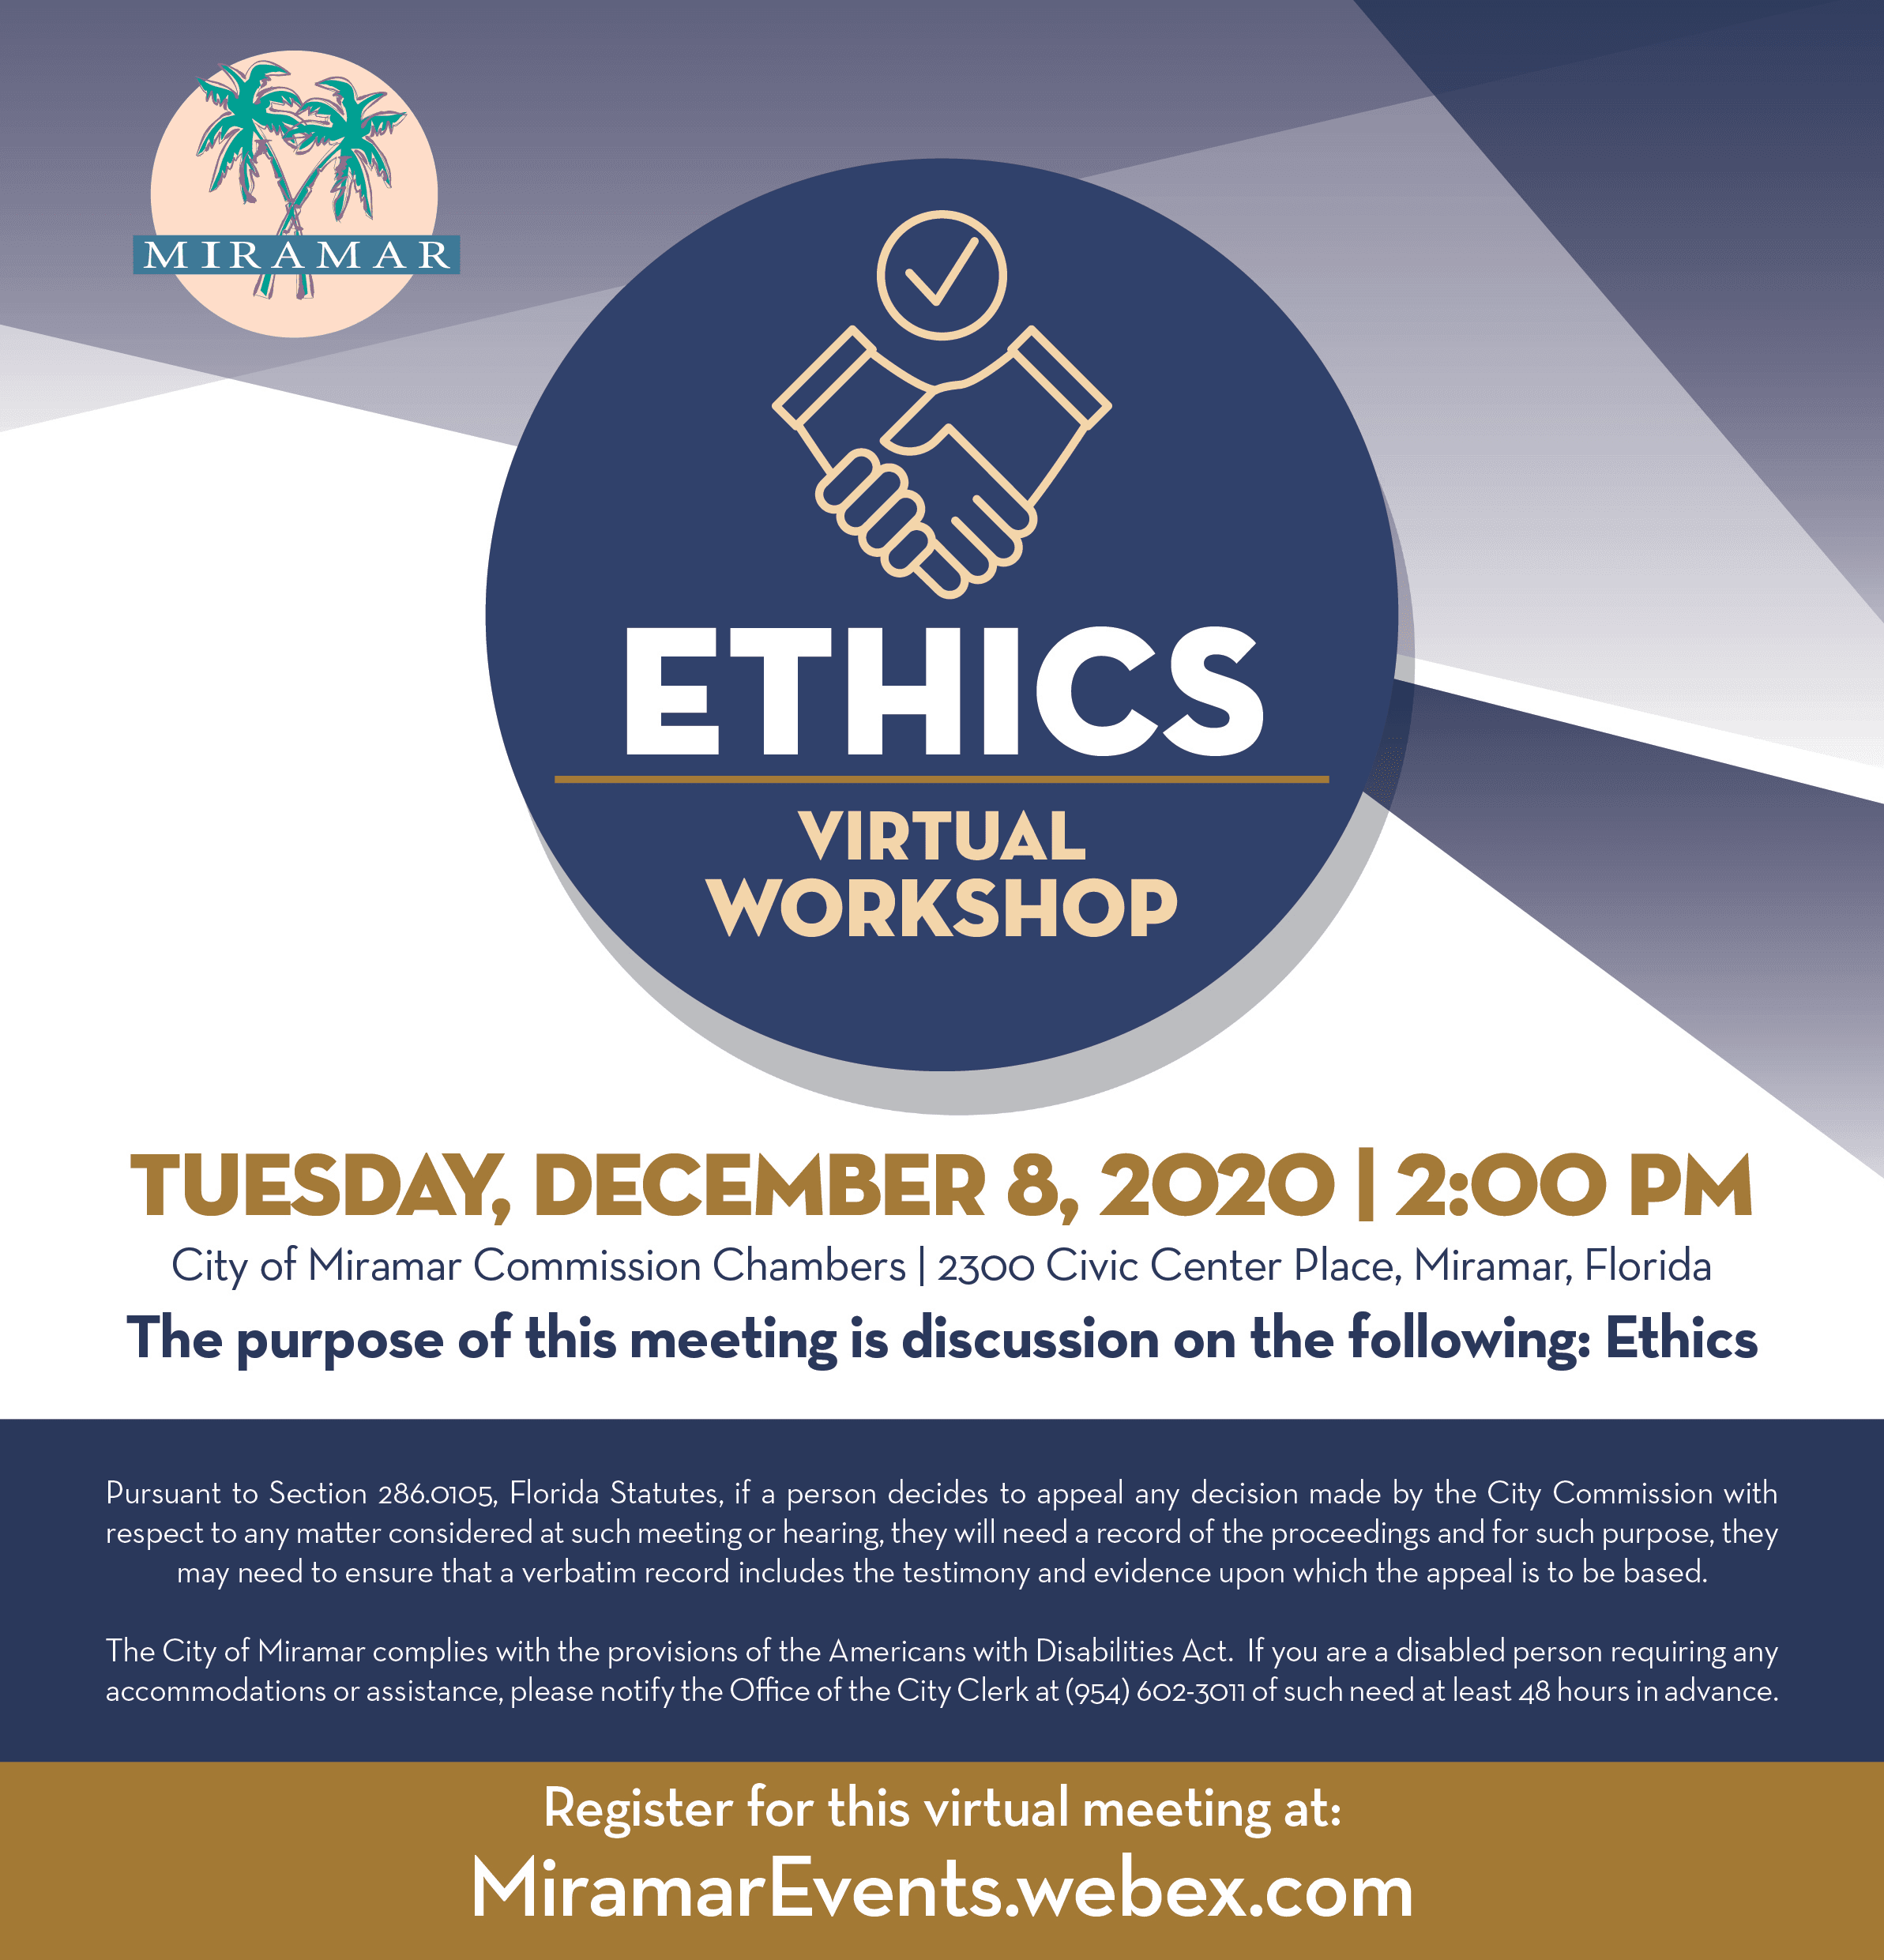 Ethics Workshop December 8 2020 - Home Page Banner